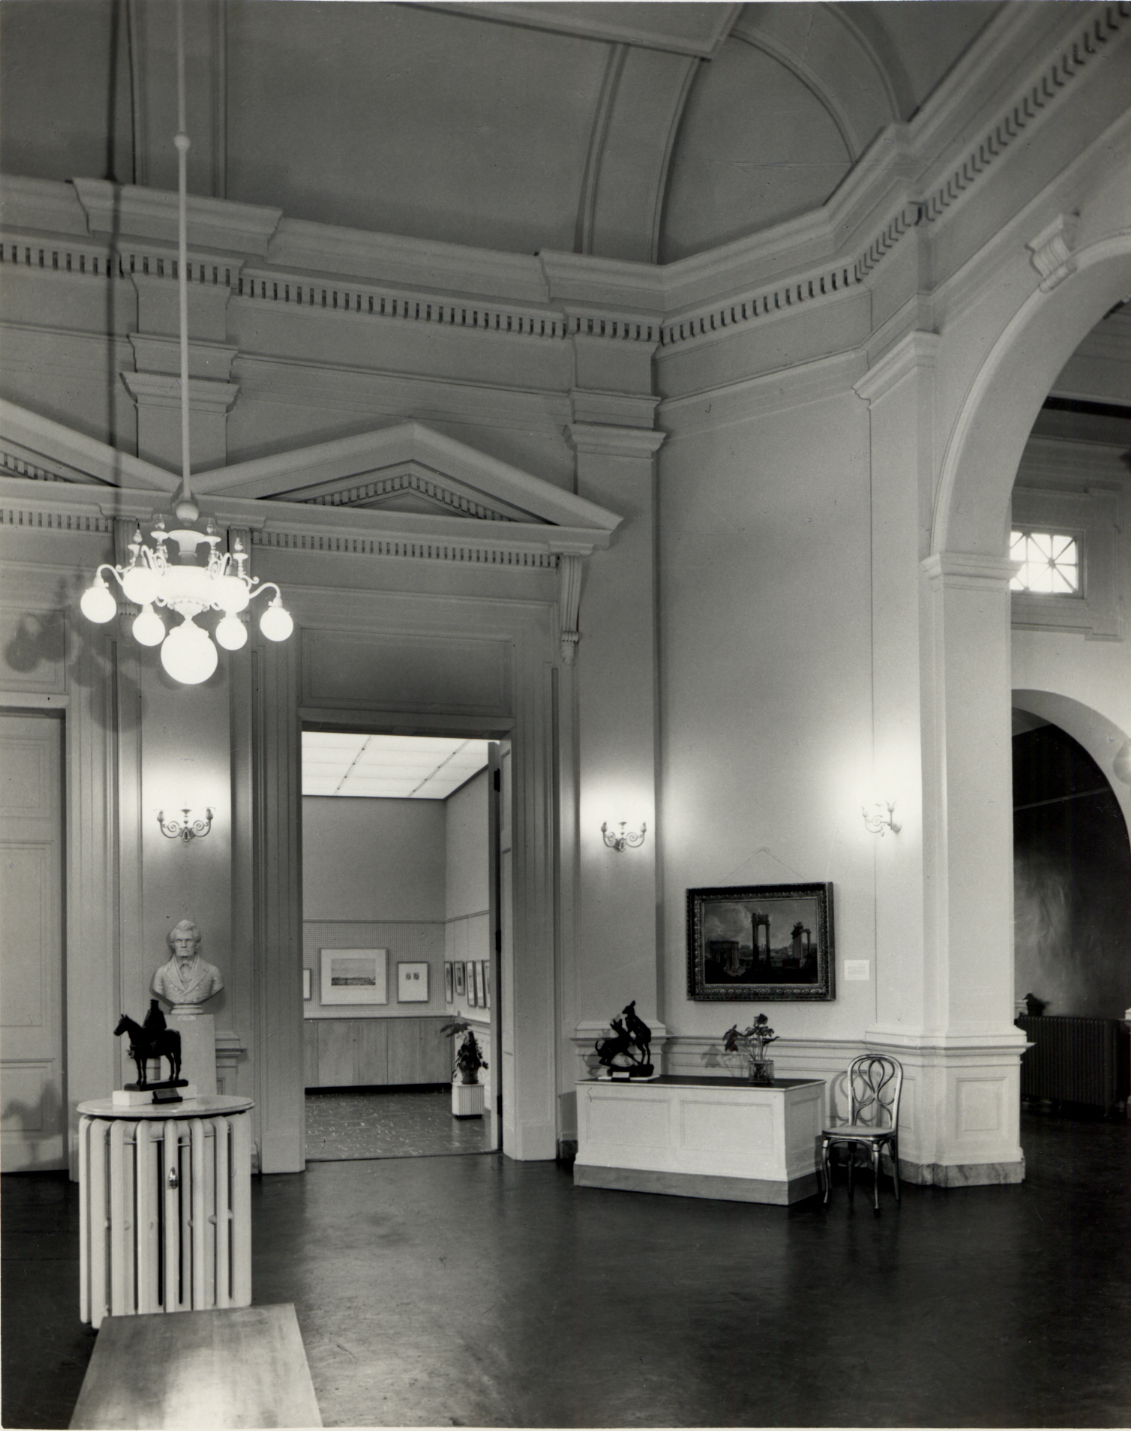 Rotunda Gallery, ca. 1960